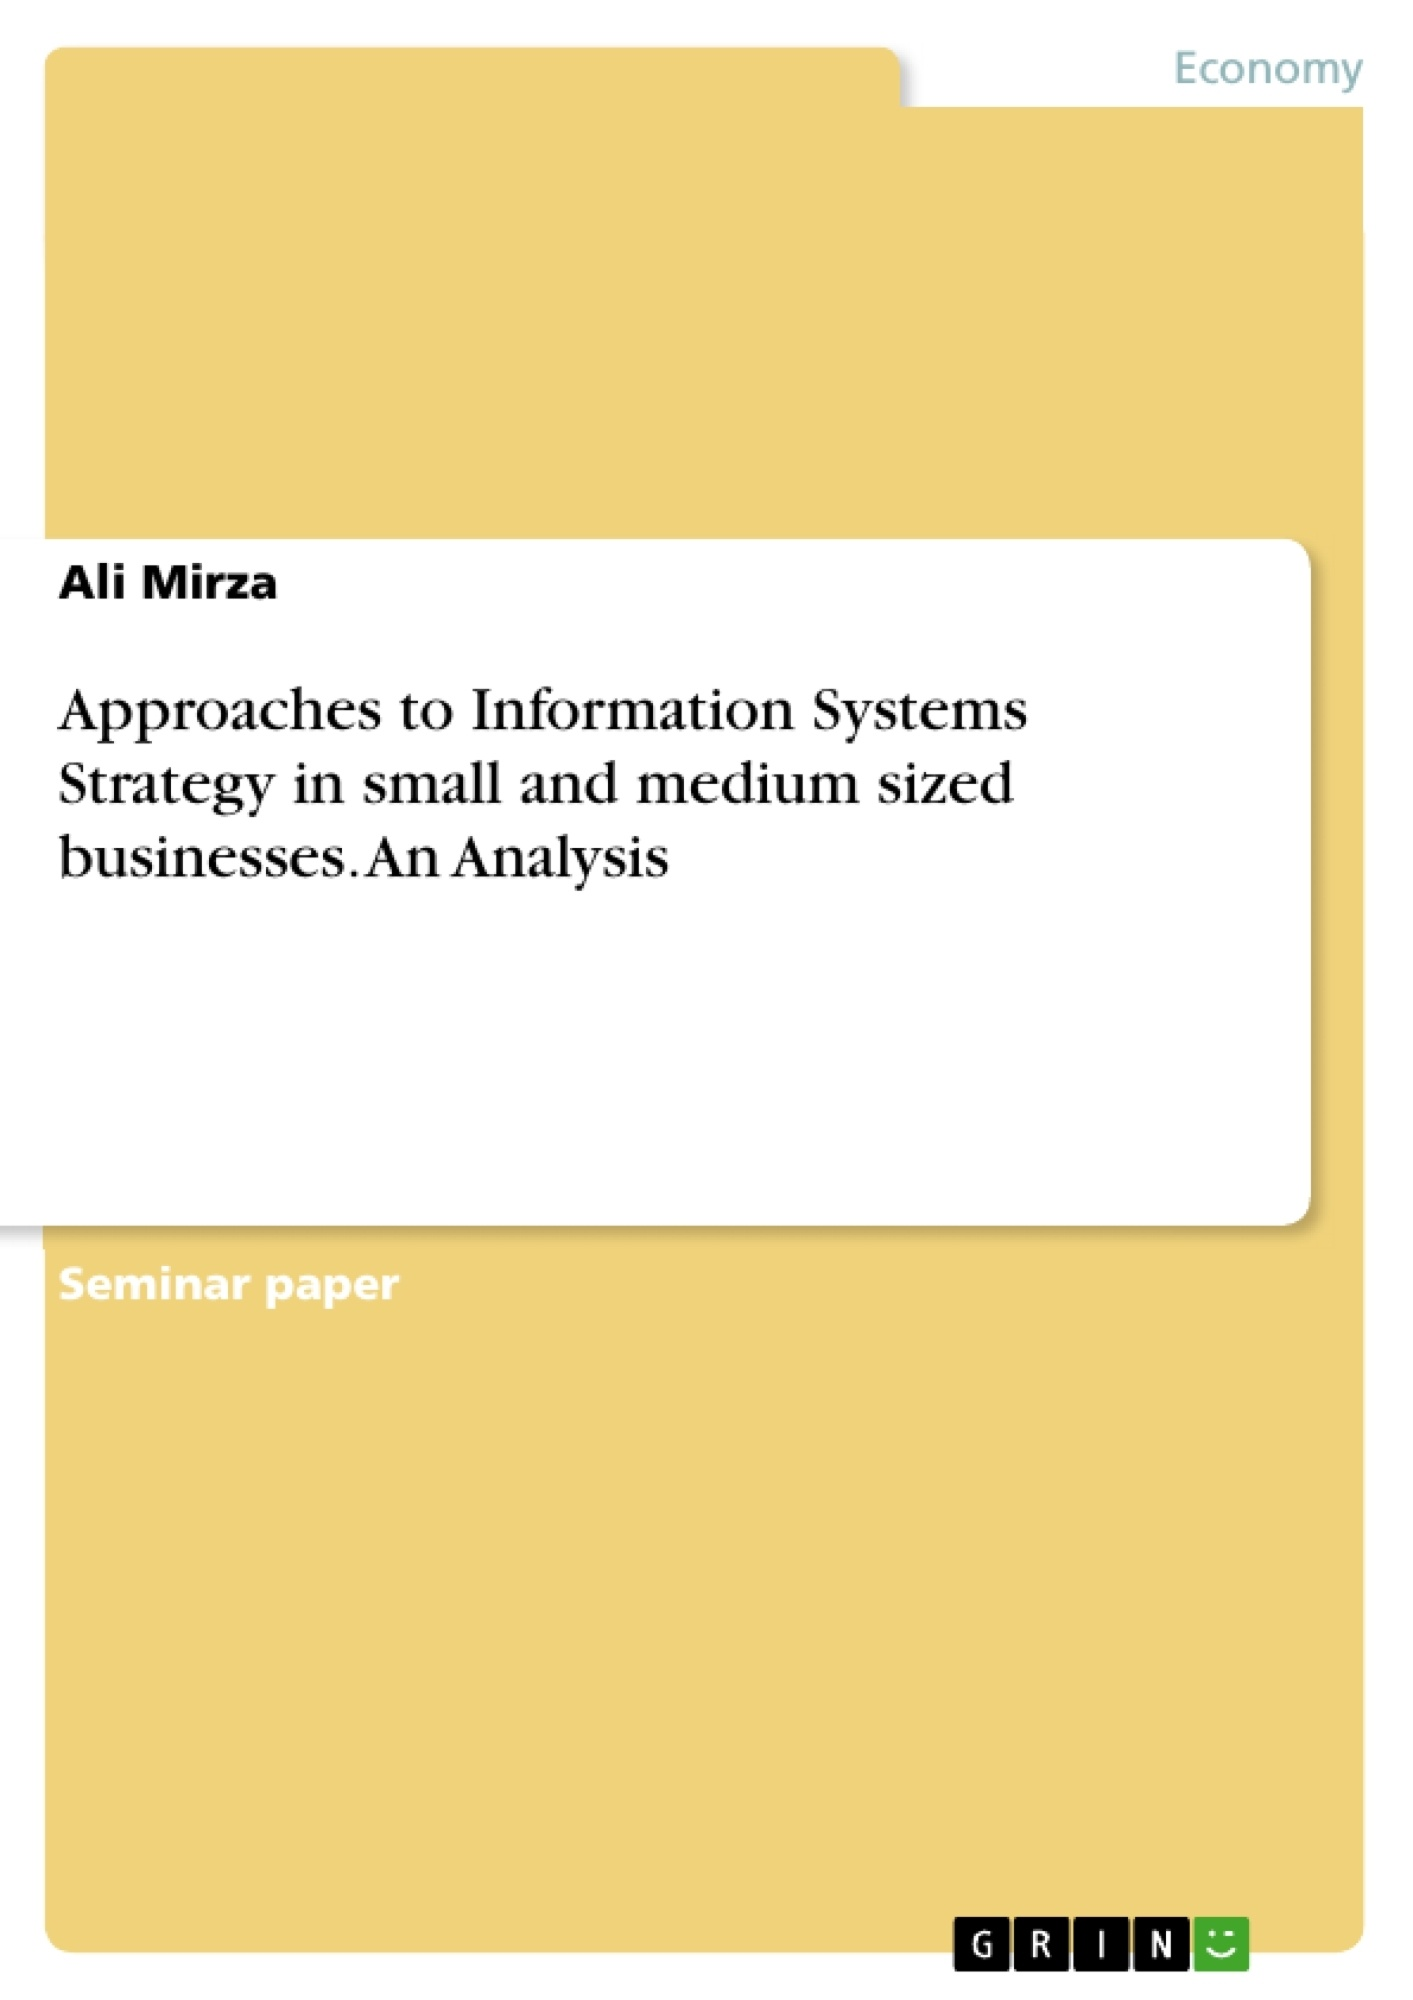 Title: Approaches to Information Systems Strategy in small and medium sized businesses. An Analysis